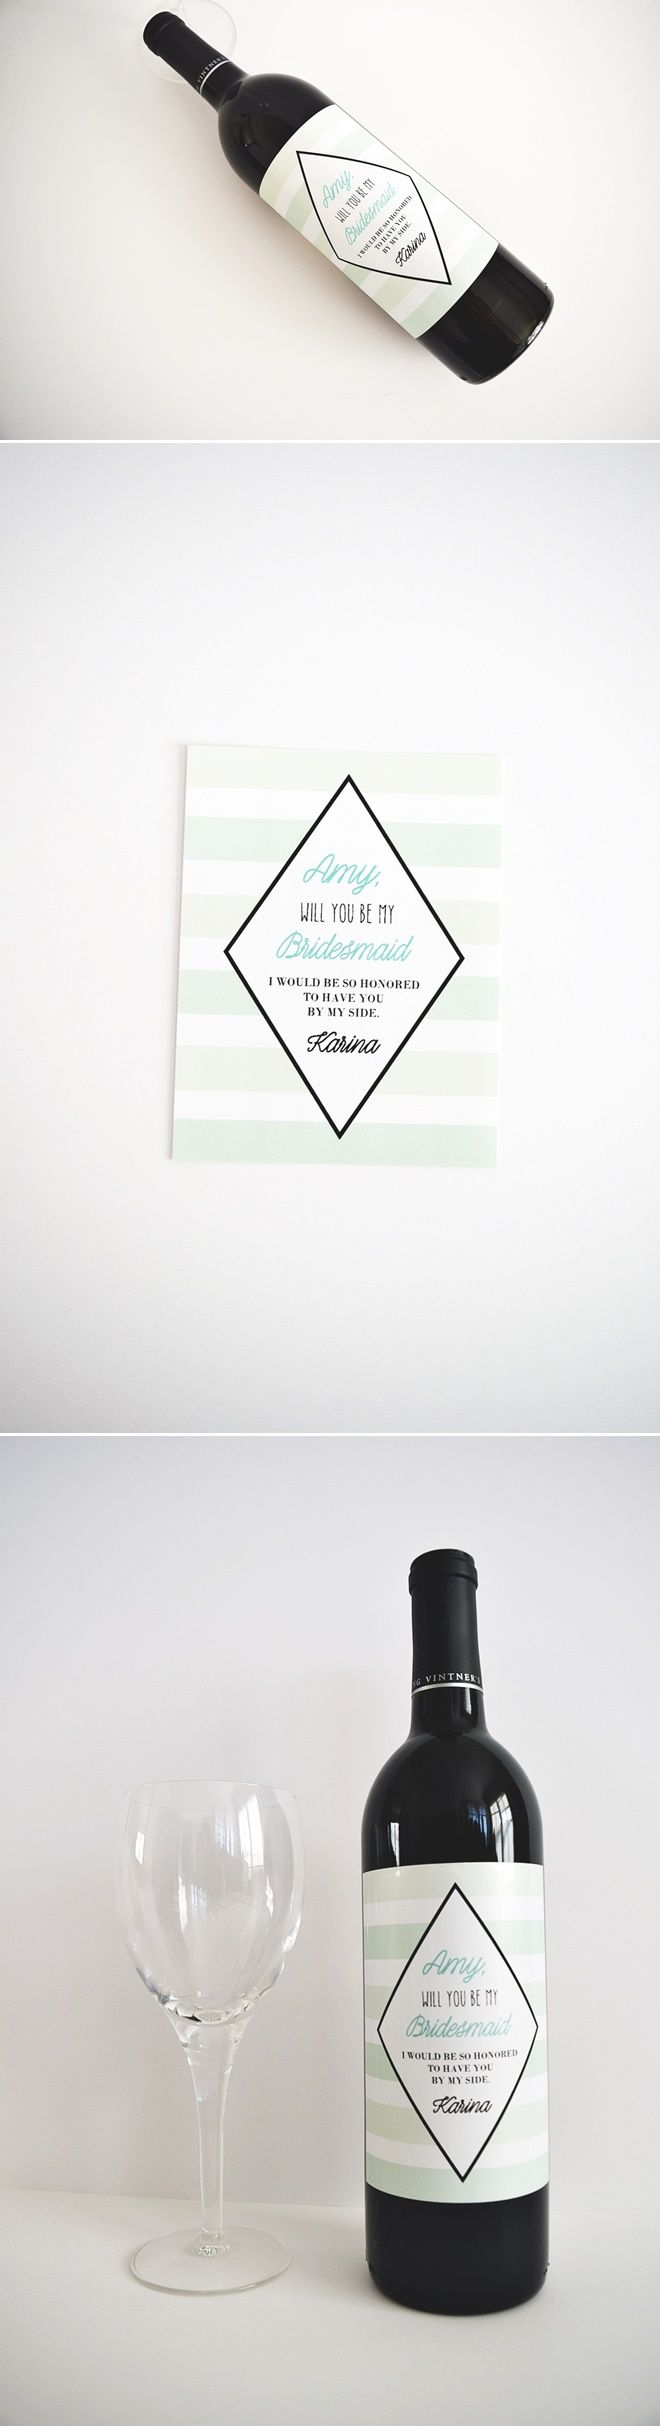 Mint Stripes Bridesmaid Gift Wine Labels - #wine #labels #wedding #mint #stripes #nautical #modern #classic #bridesmaid #proposal #maidofhonor